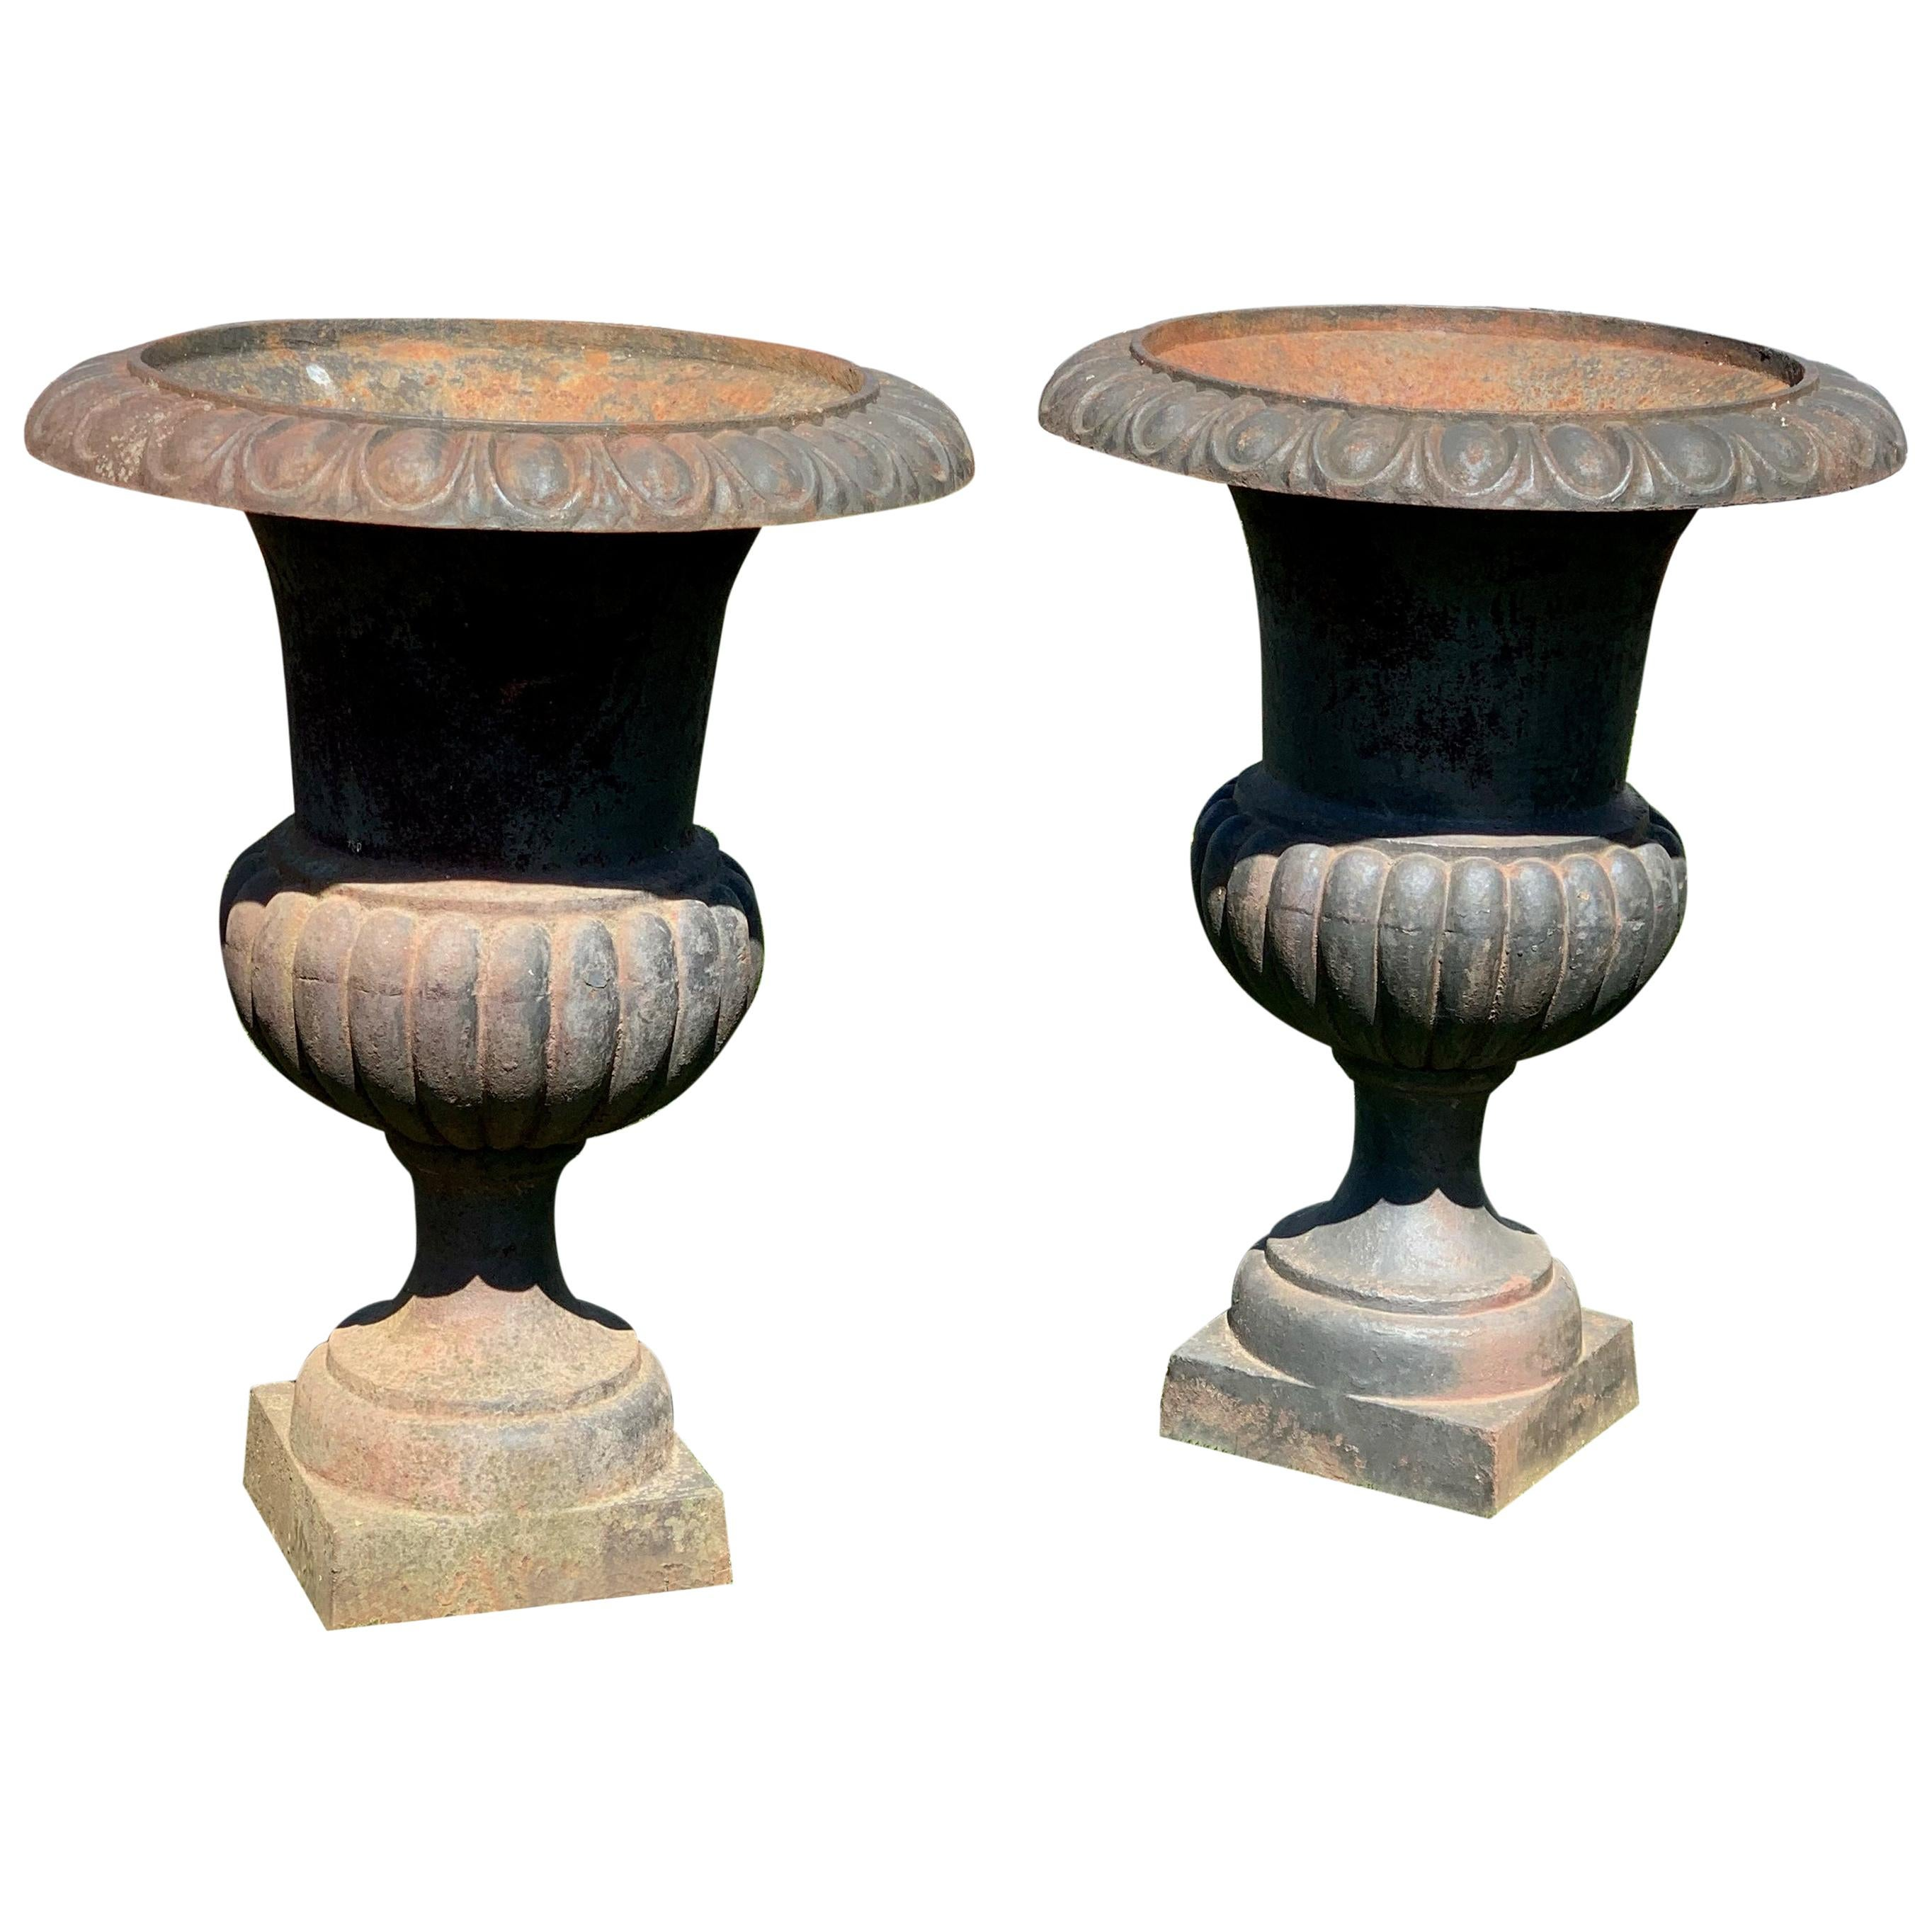 Vintage Pair of Neoclassical Cast Iron Garden Urns Planters